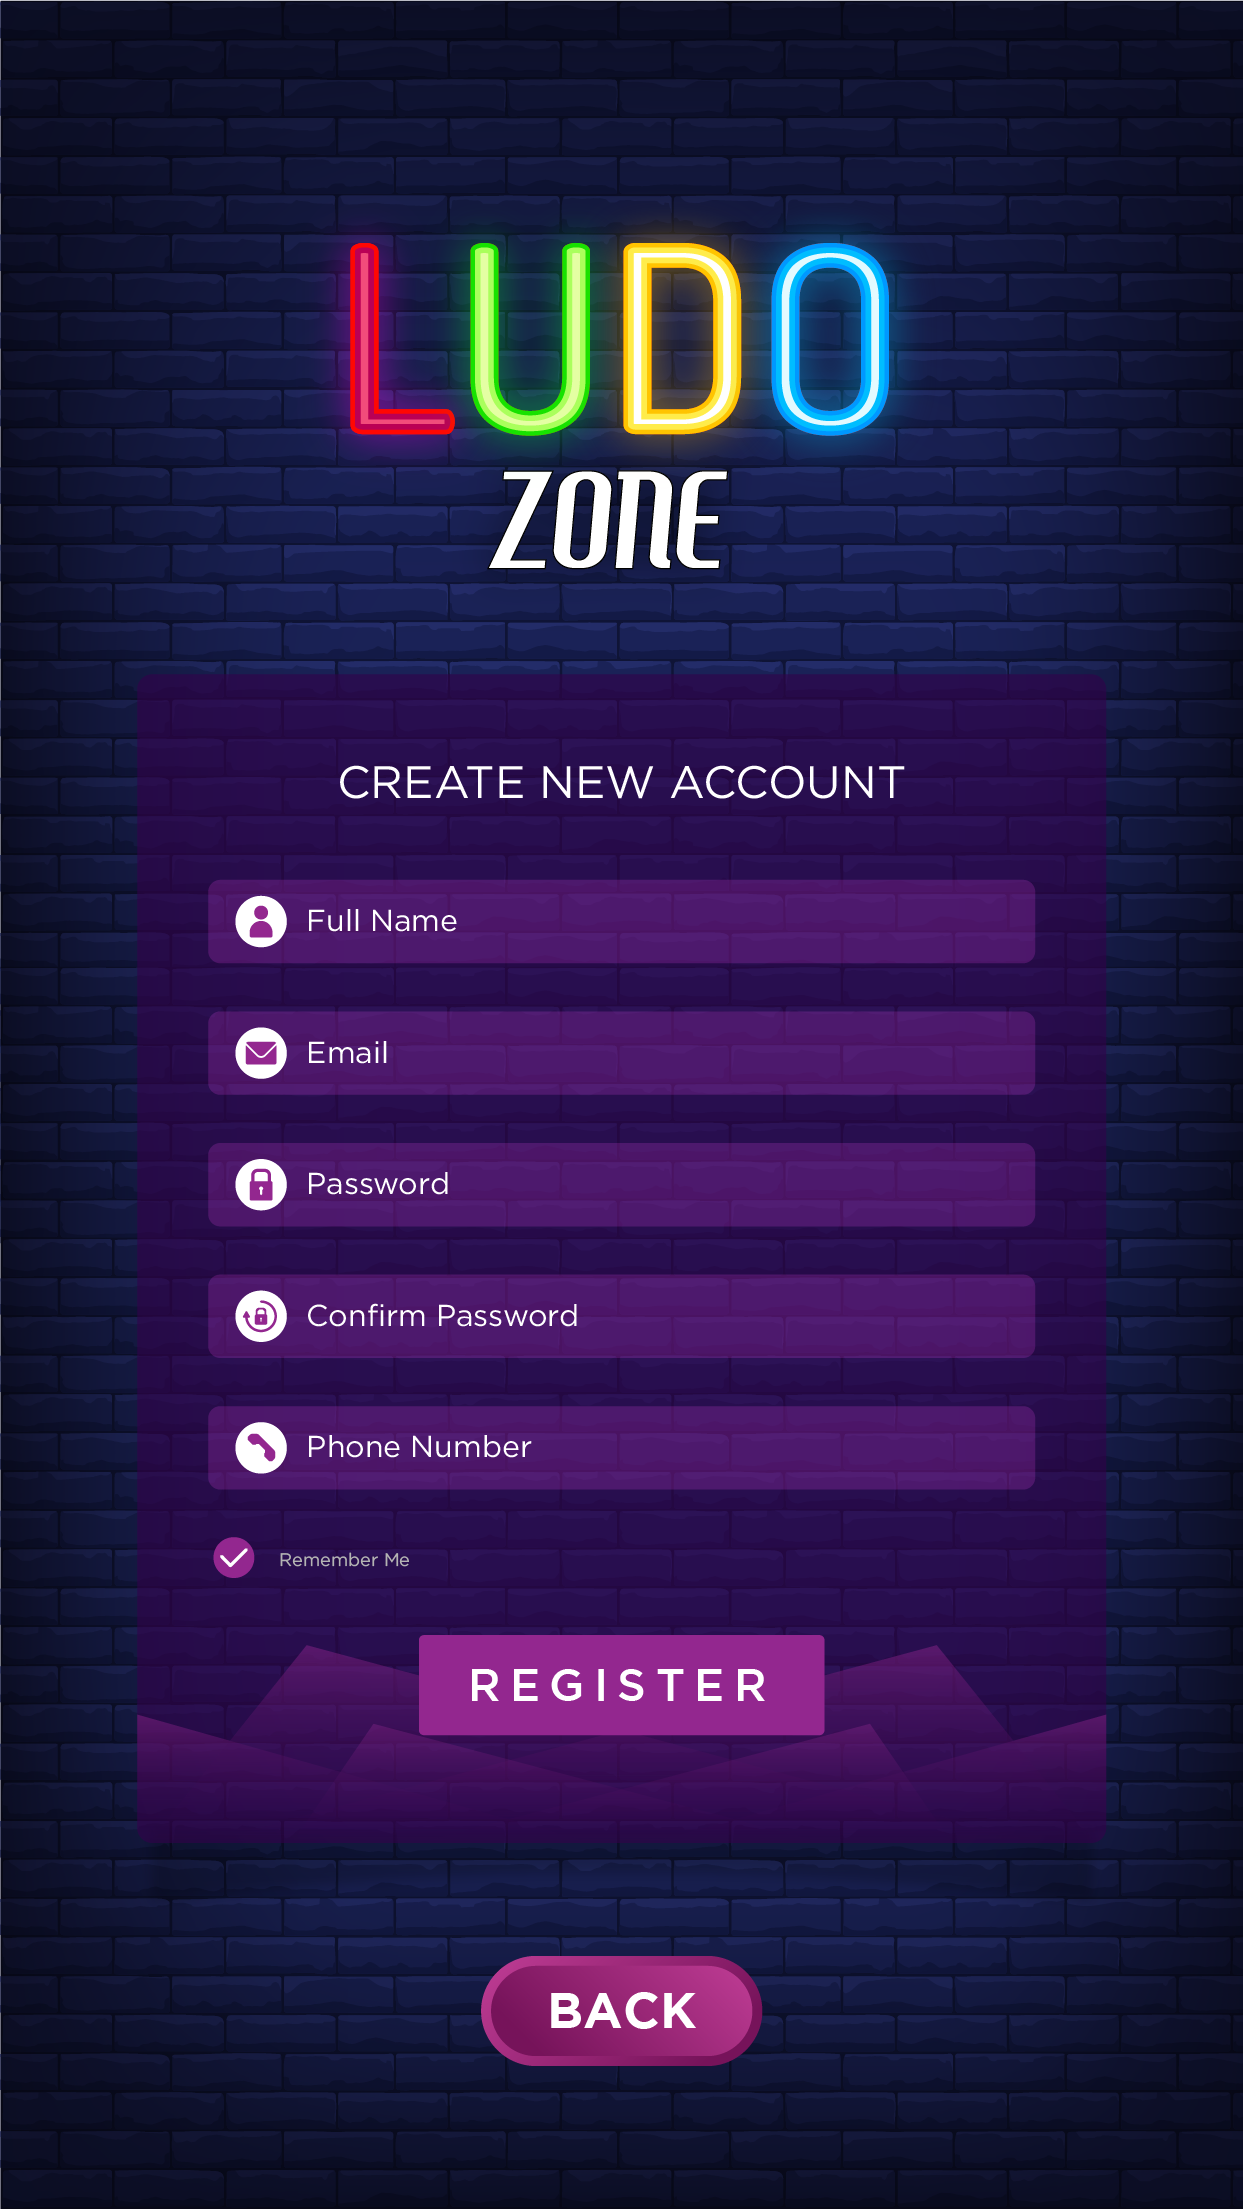 create-new-account-screen.png